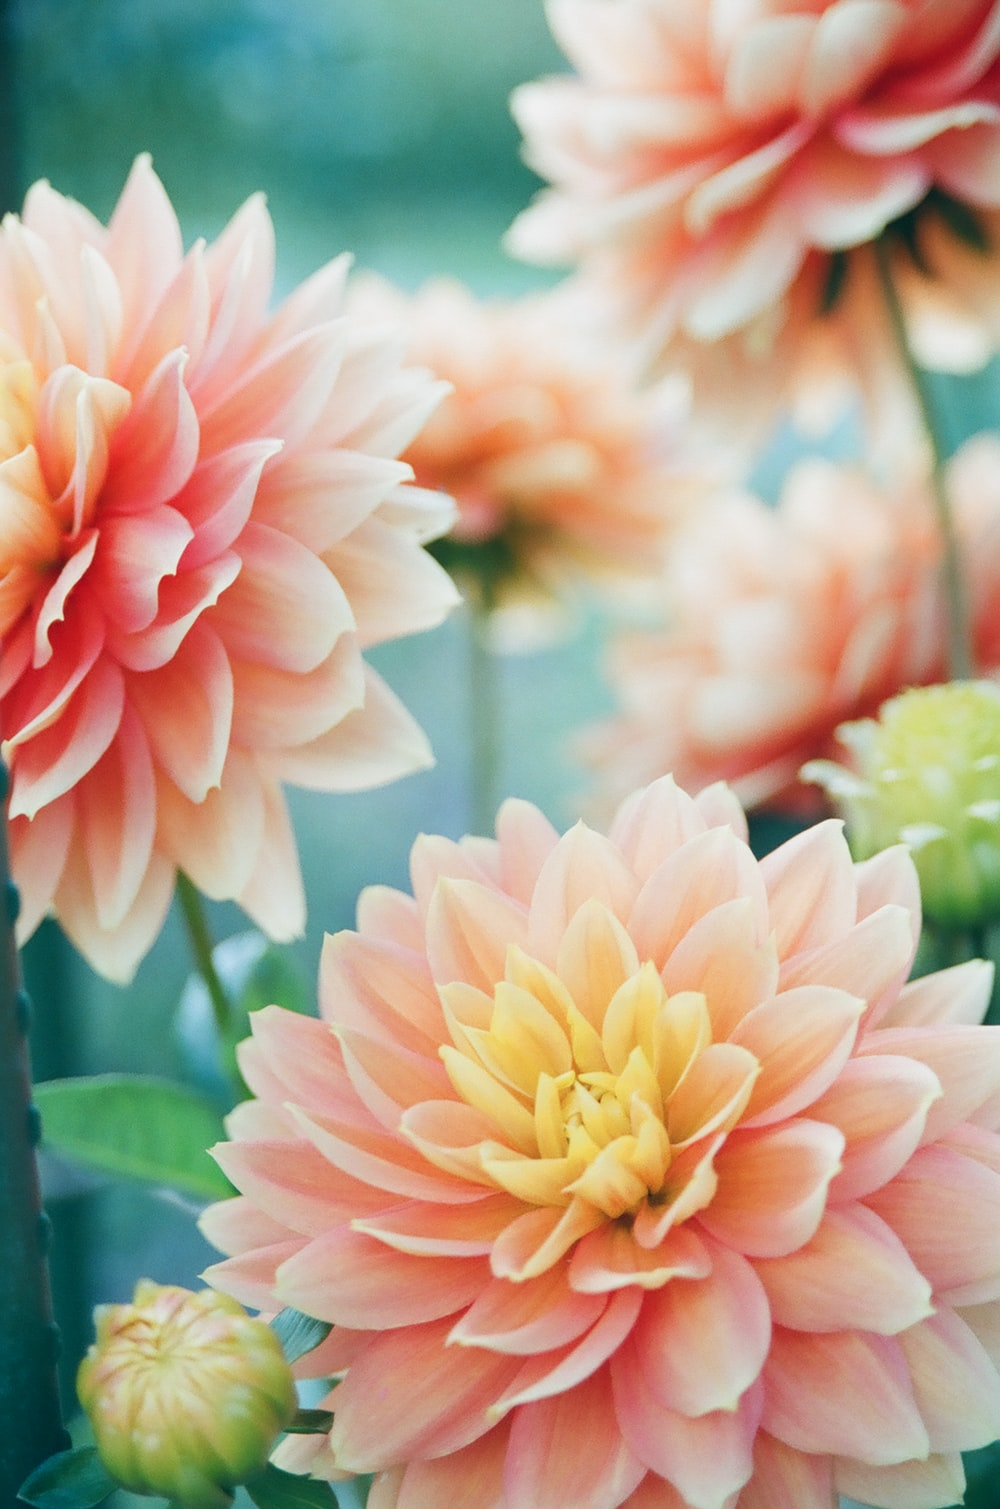 pink dahlia flowers in focus photography